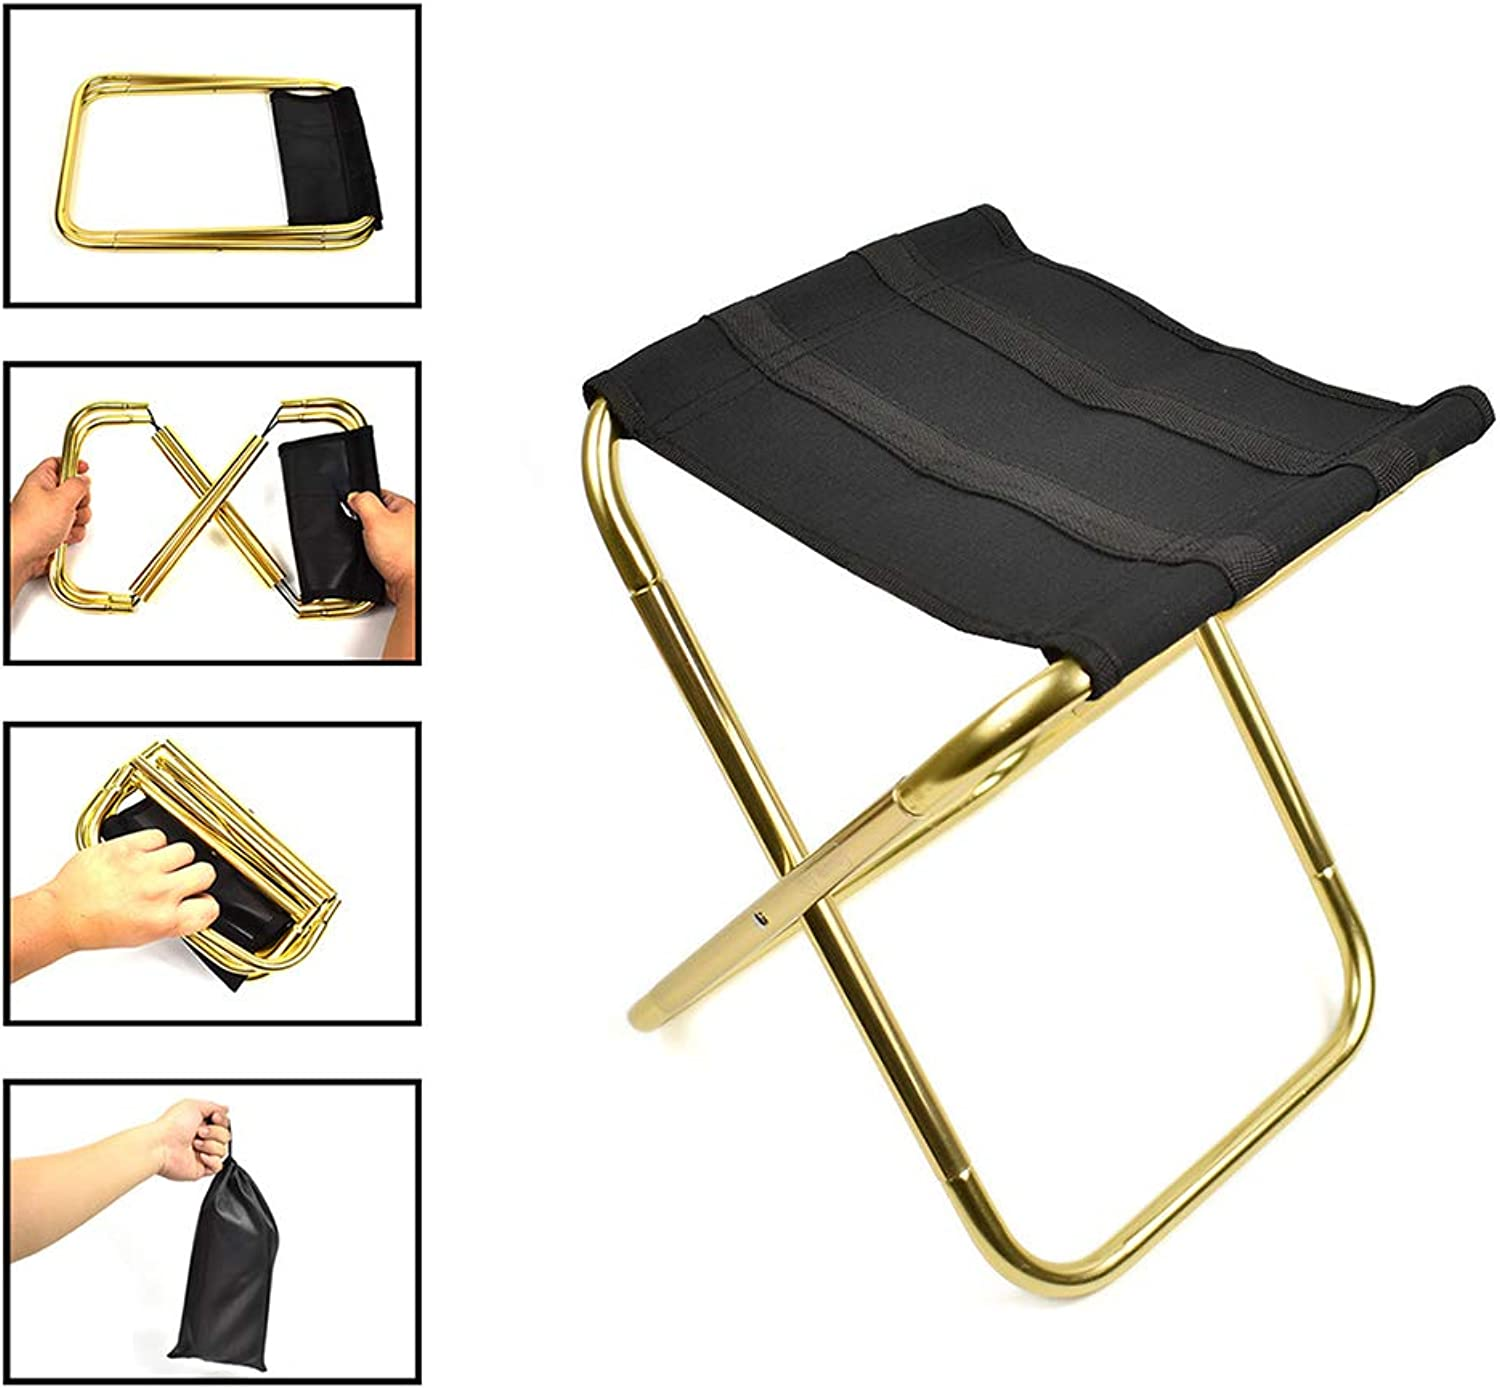 Camping Folding Chairs, Small Outdoor Folding Chair Aluminum Fishing Chair Portable Barbecue Folding Stool